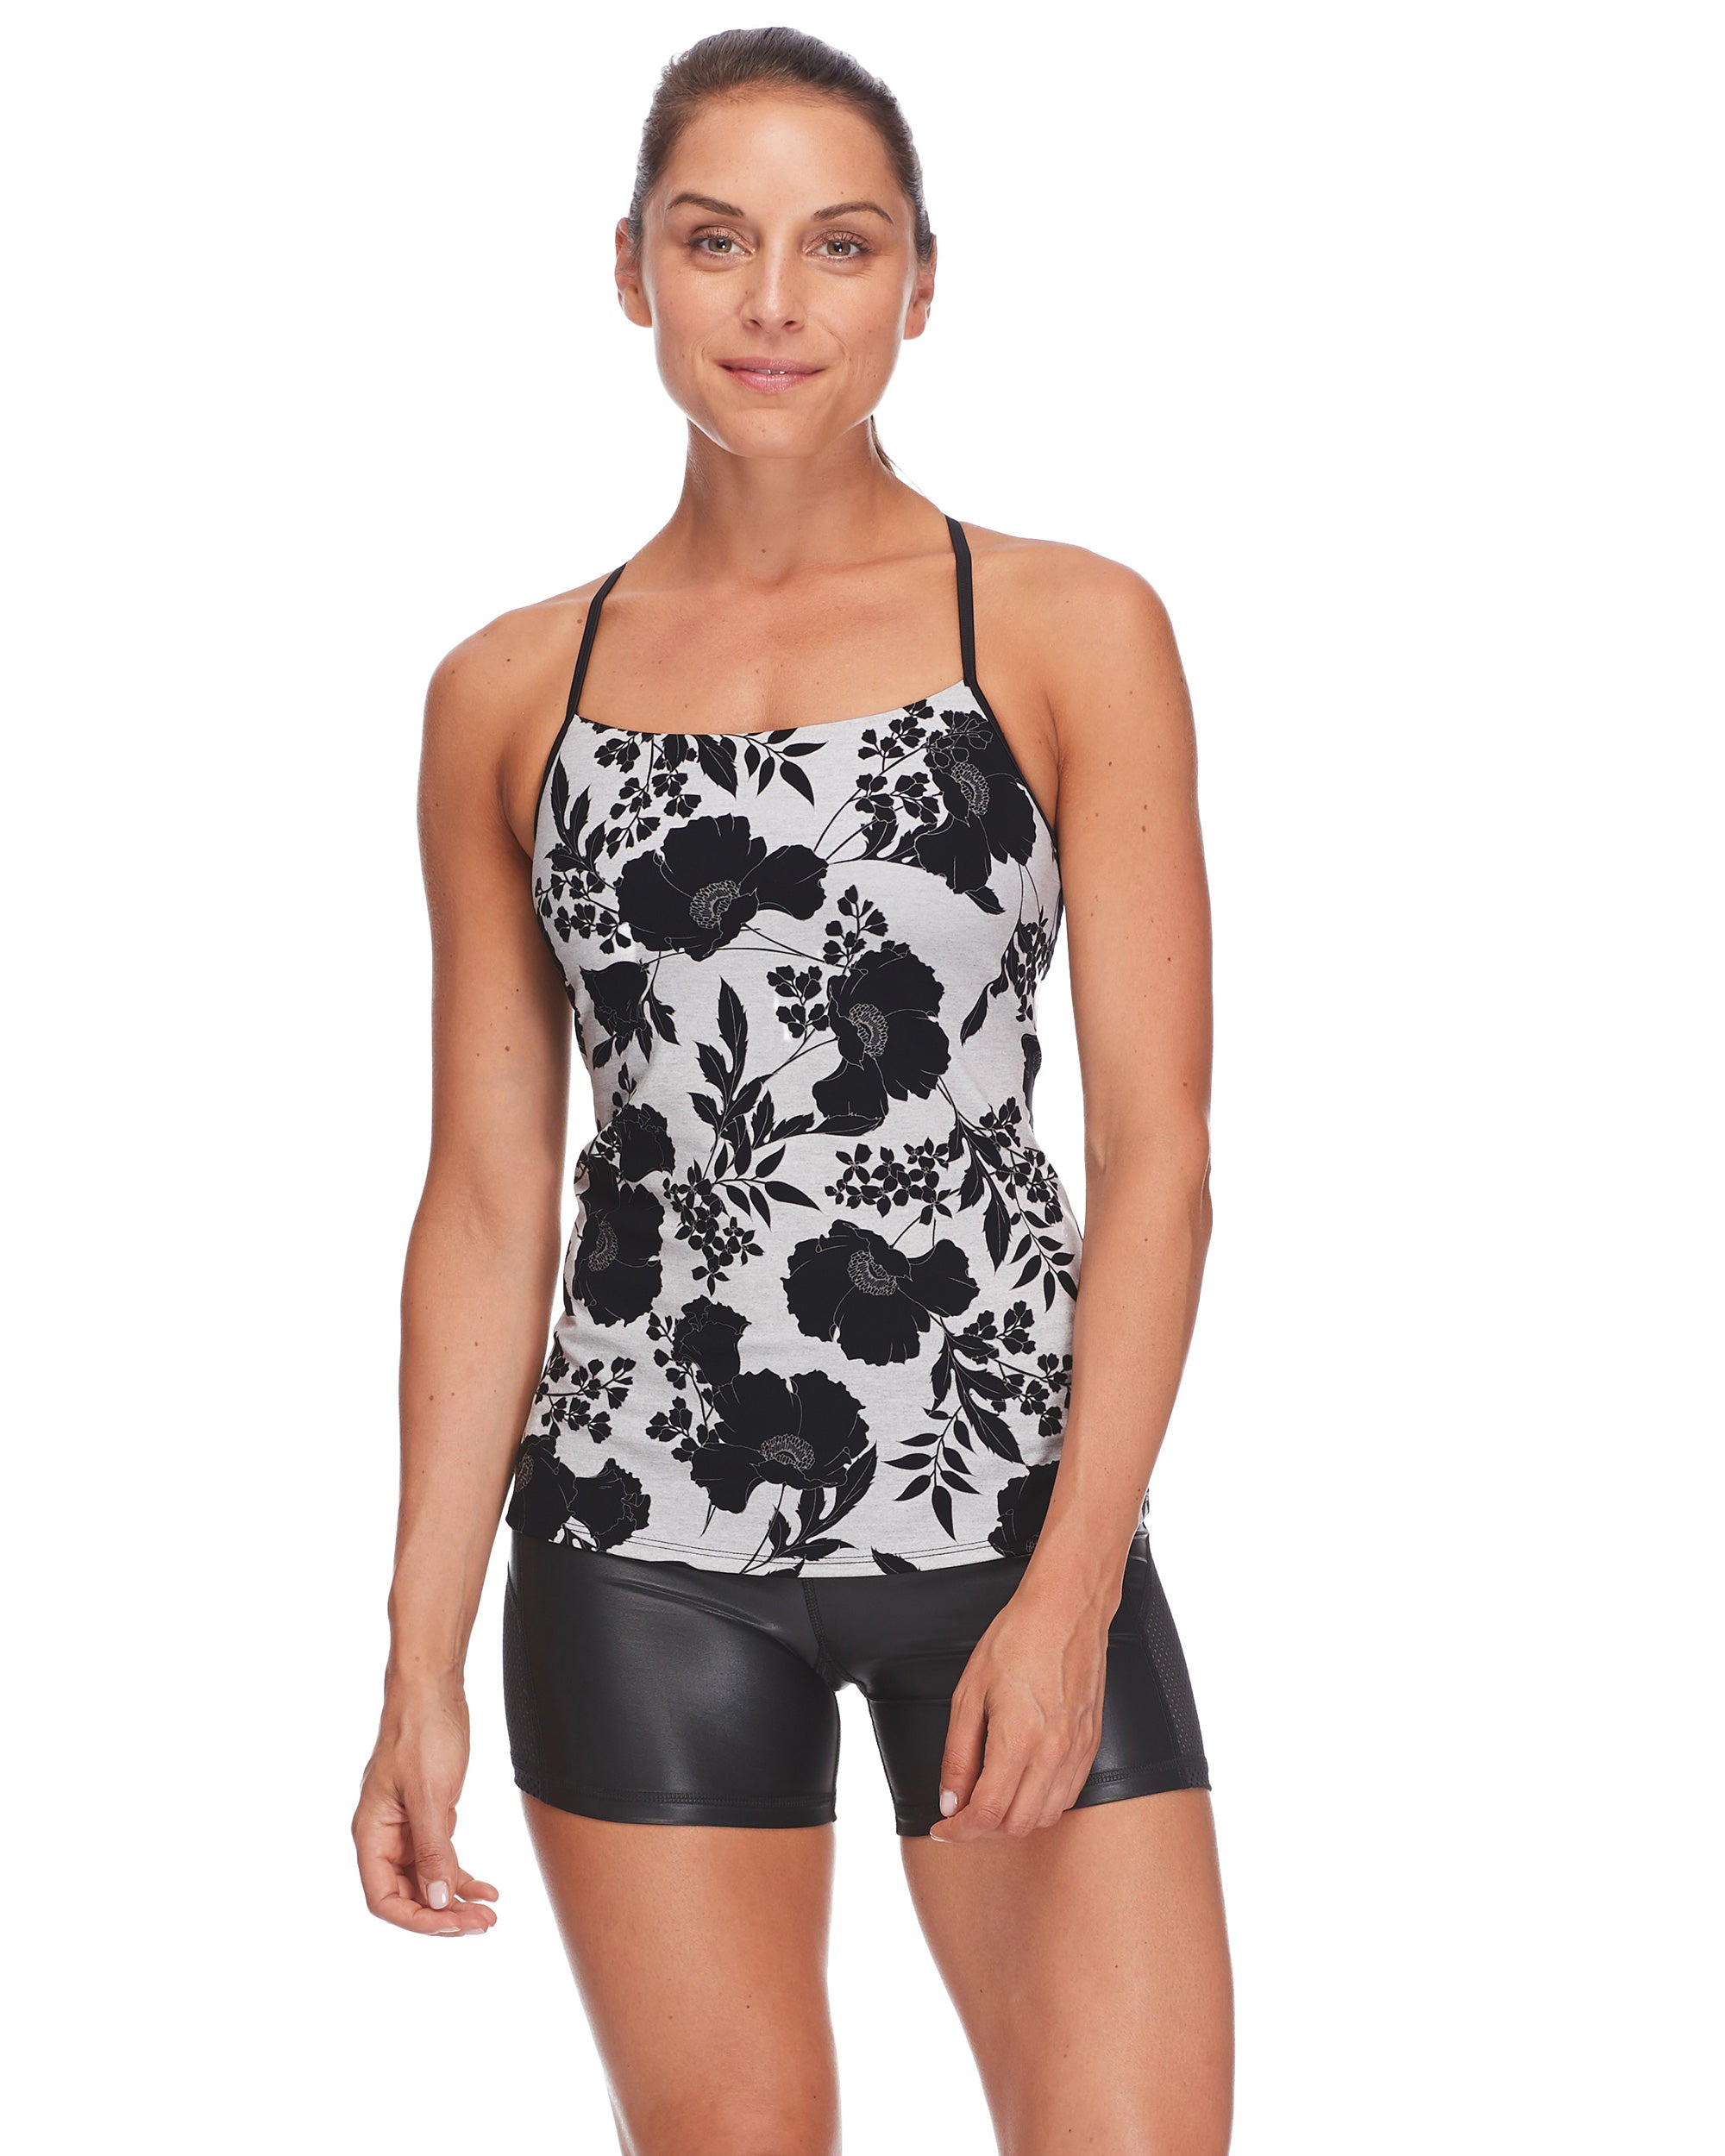 Zephyr Racerback Tank Top in Waitomo - Black